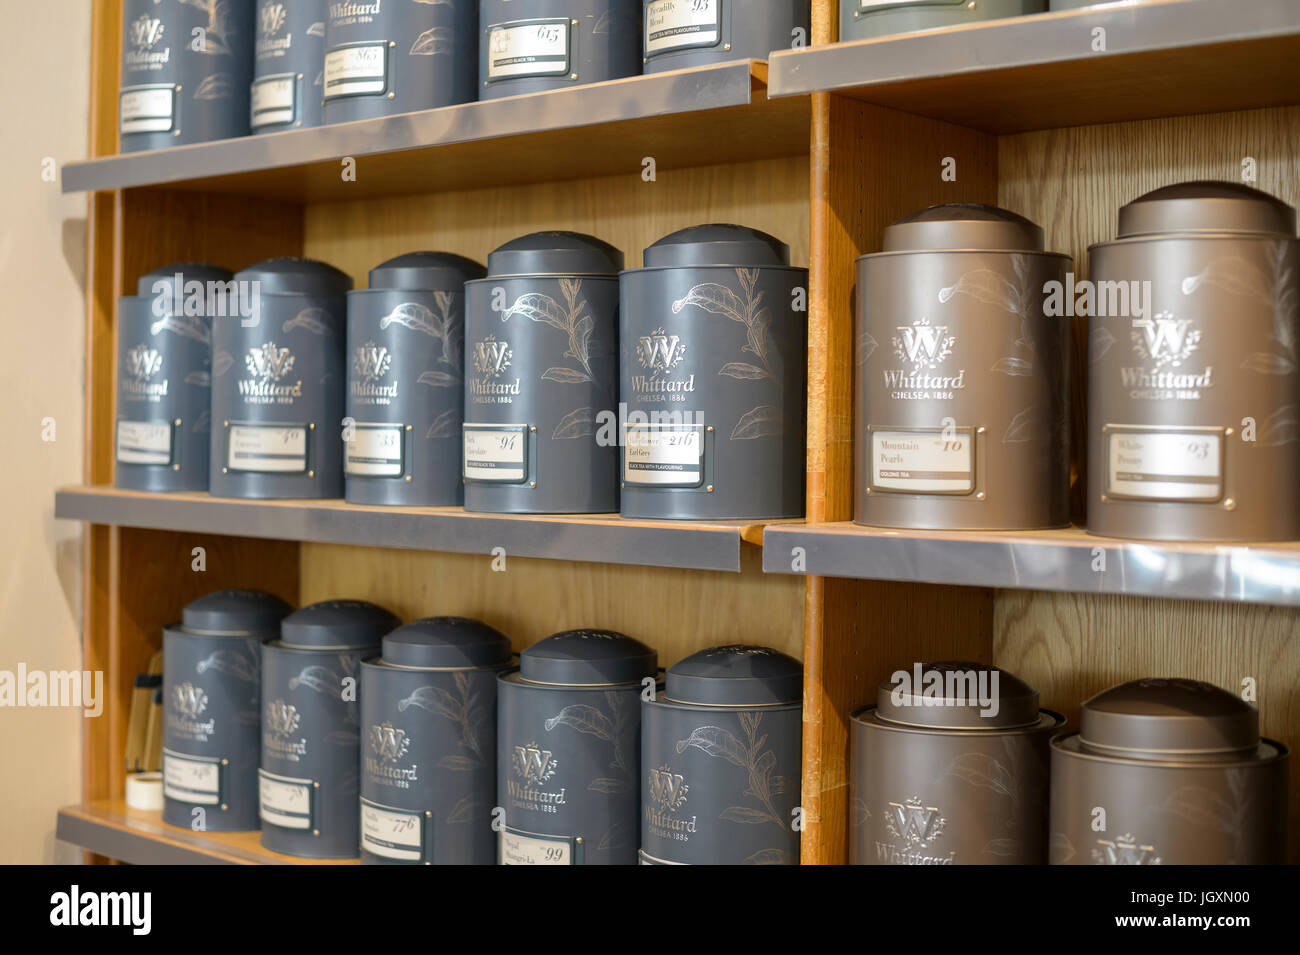 Cannisters Conatining Loose Leaf Tea On Shelves Shelving In